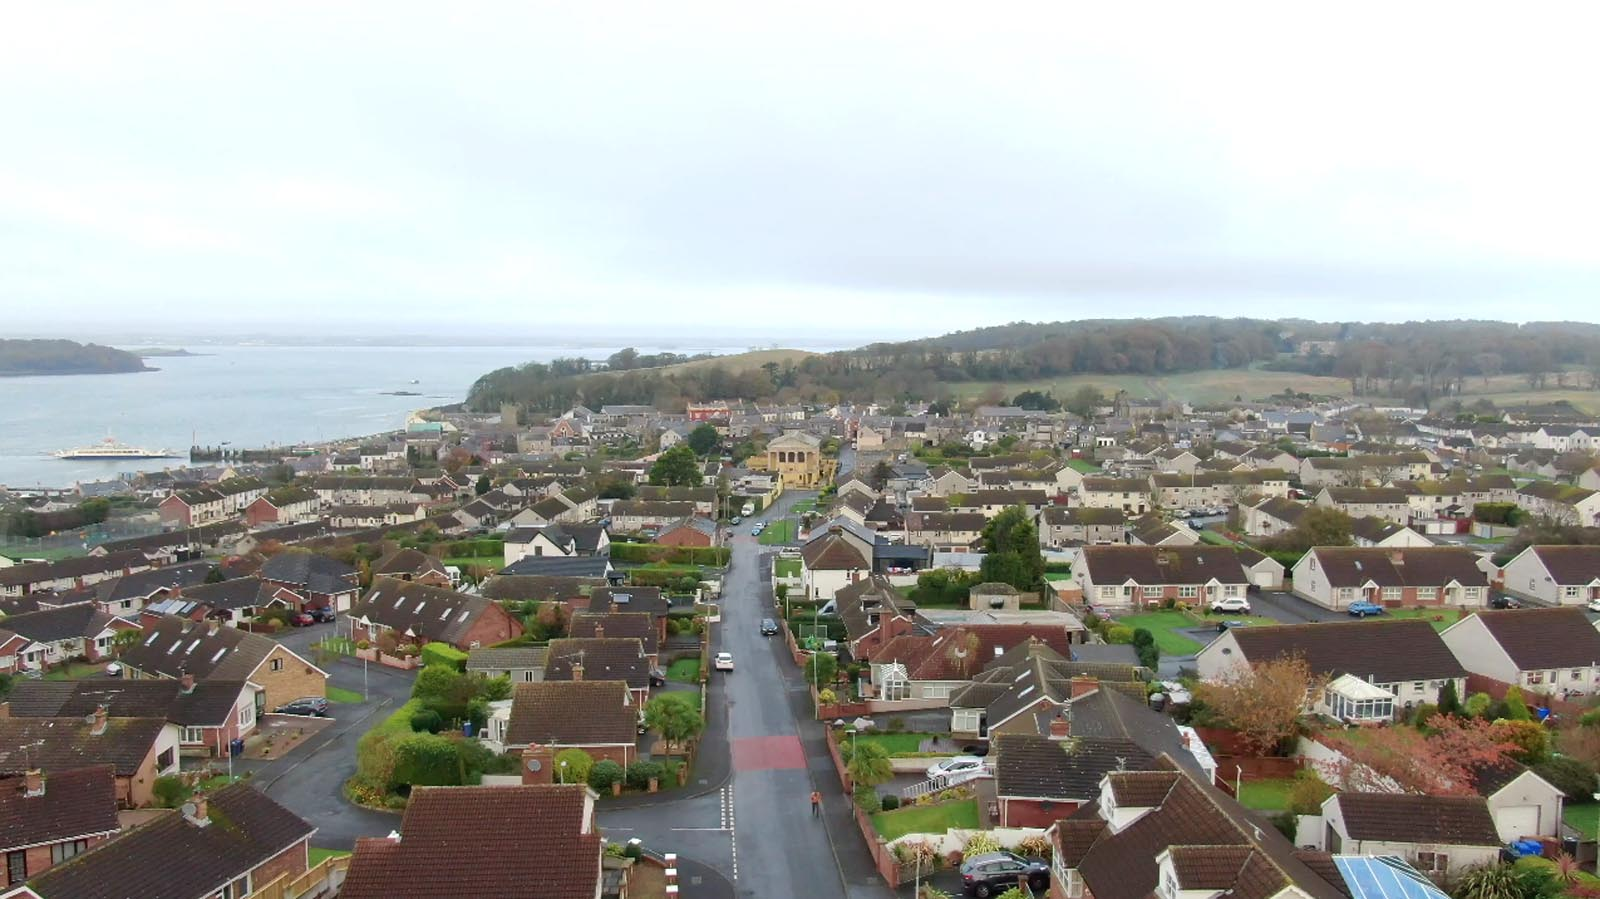 Aerial drone photography and video production services Dublin and Ireland portfolio - screenshot 4 of Portico Ards video